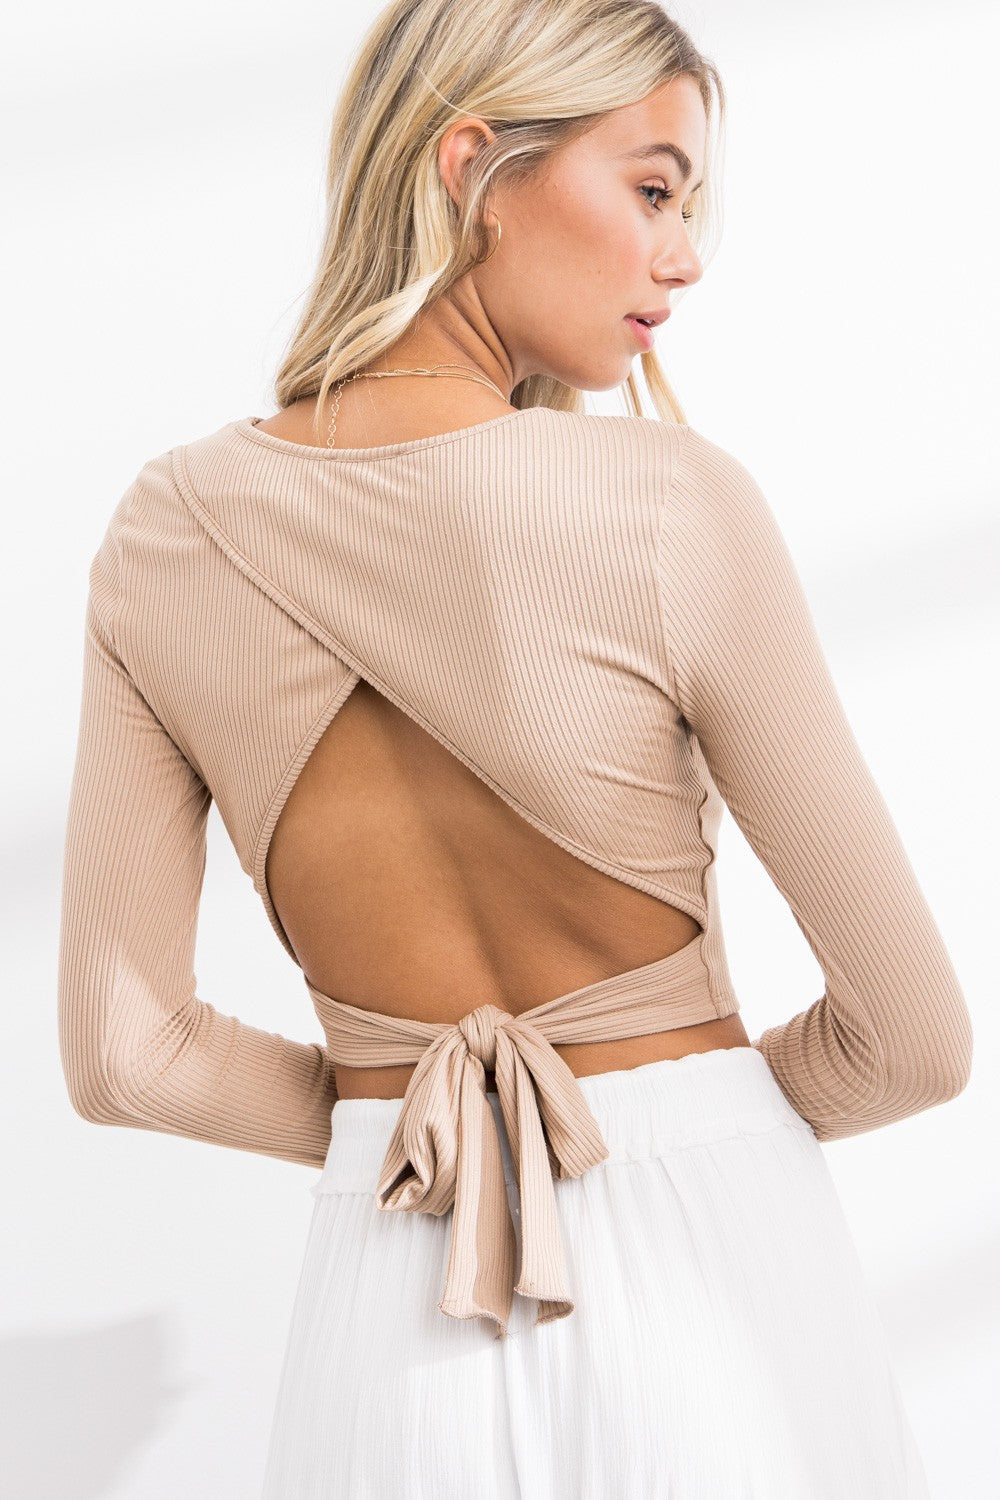 Sally Open Back Top